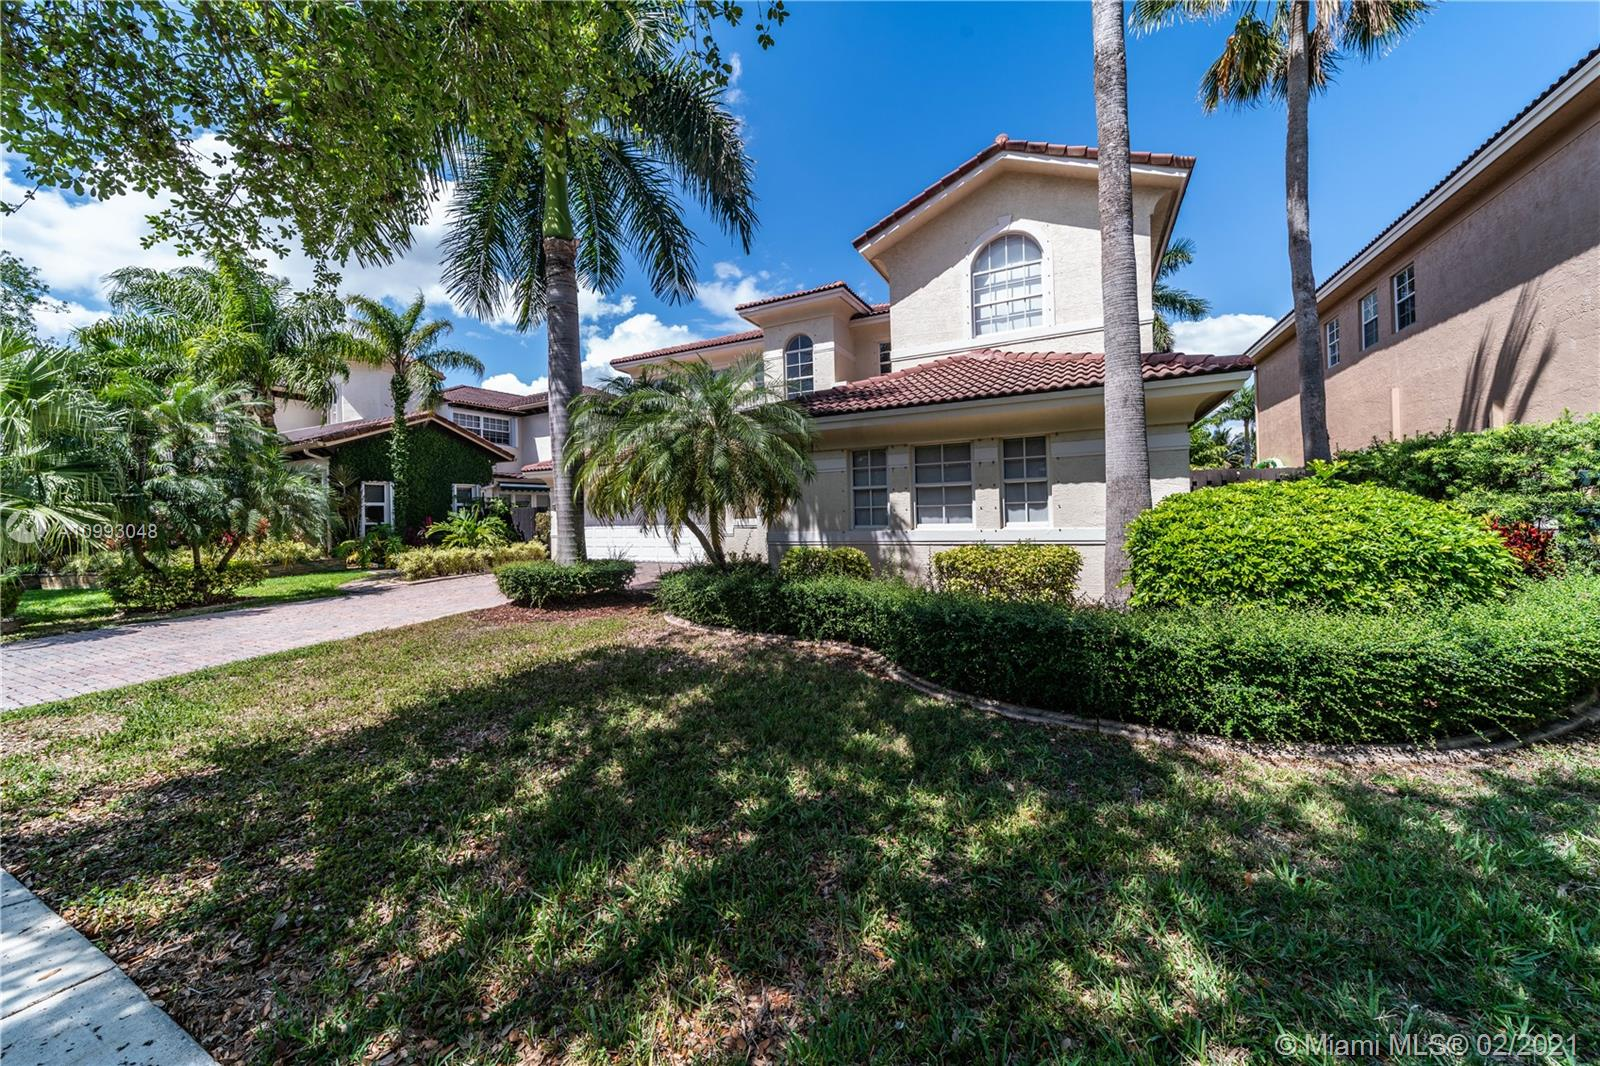 Doral Isles - 11213 NW 71st Ter, Doral, FL 33178